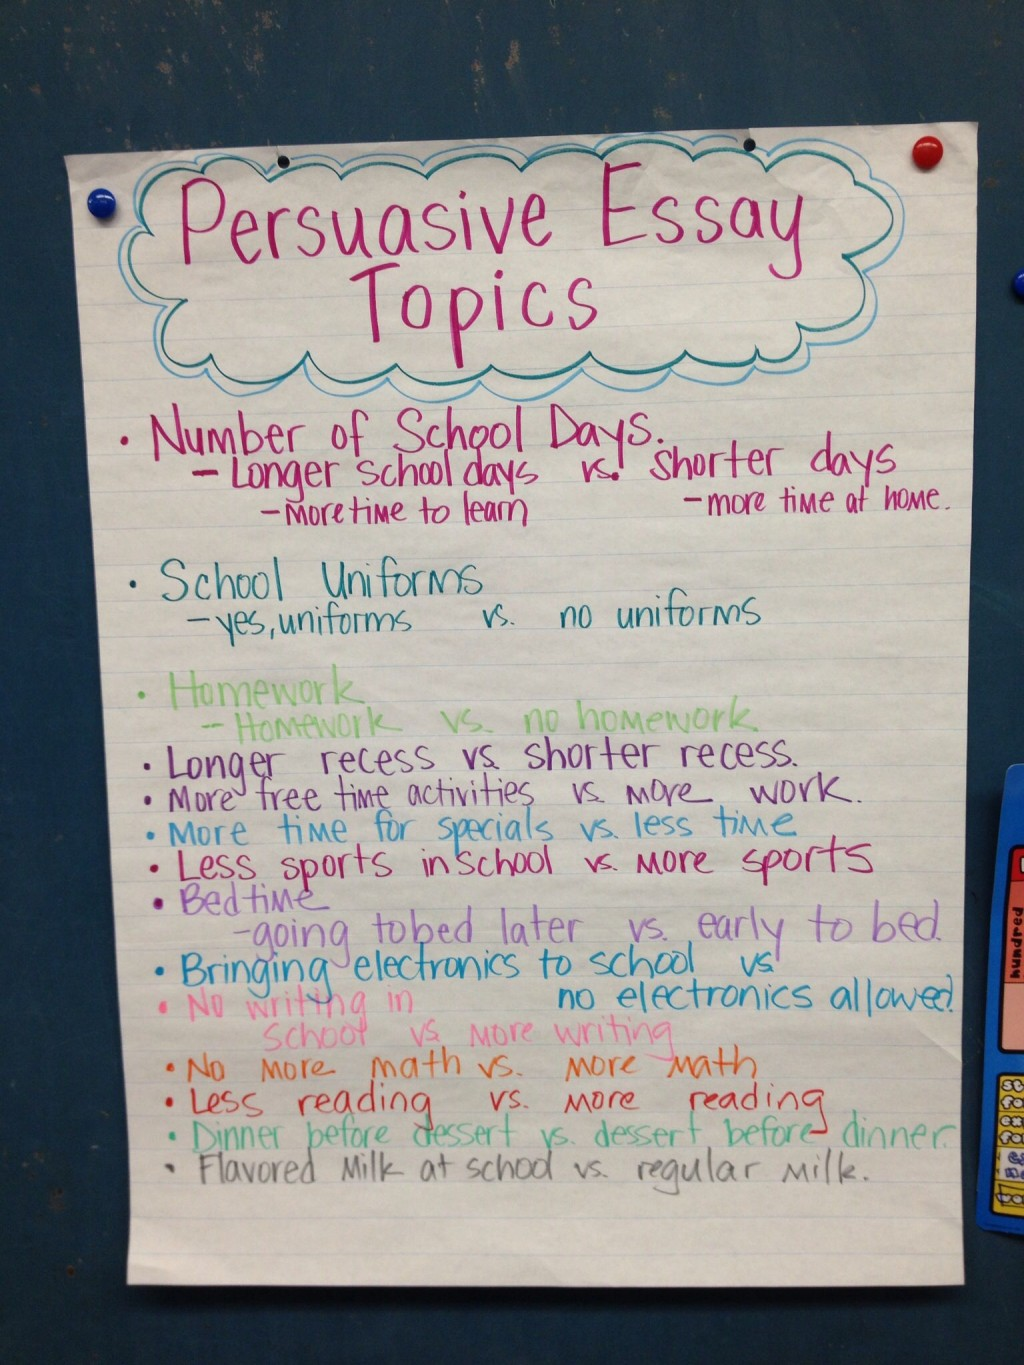 004 Topics For Persuasive Essays Essay Incredible 4th Grade Large